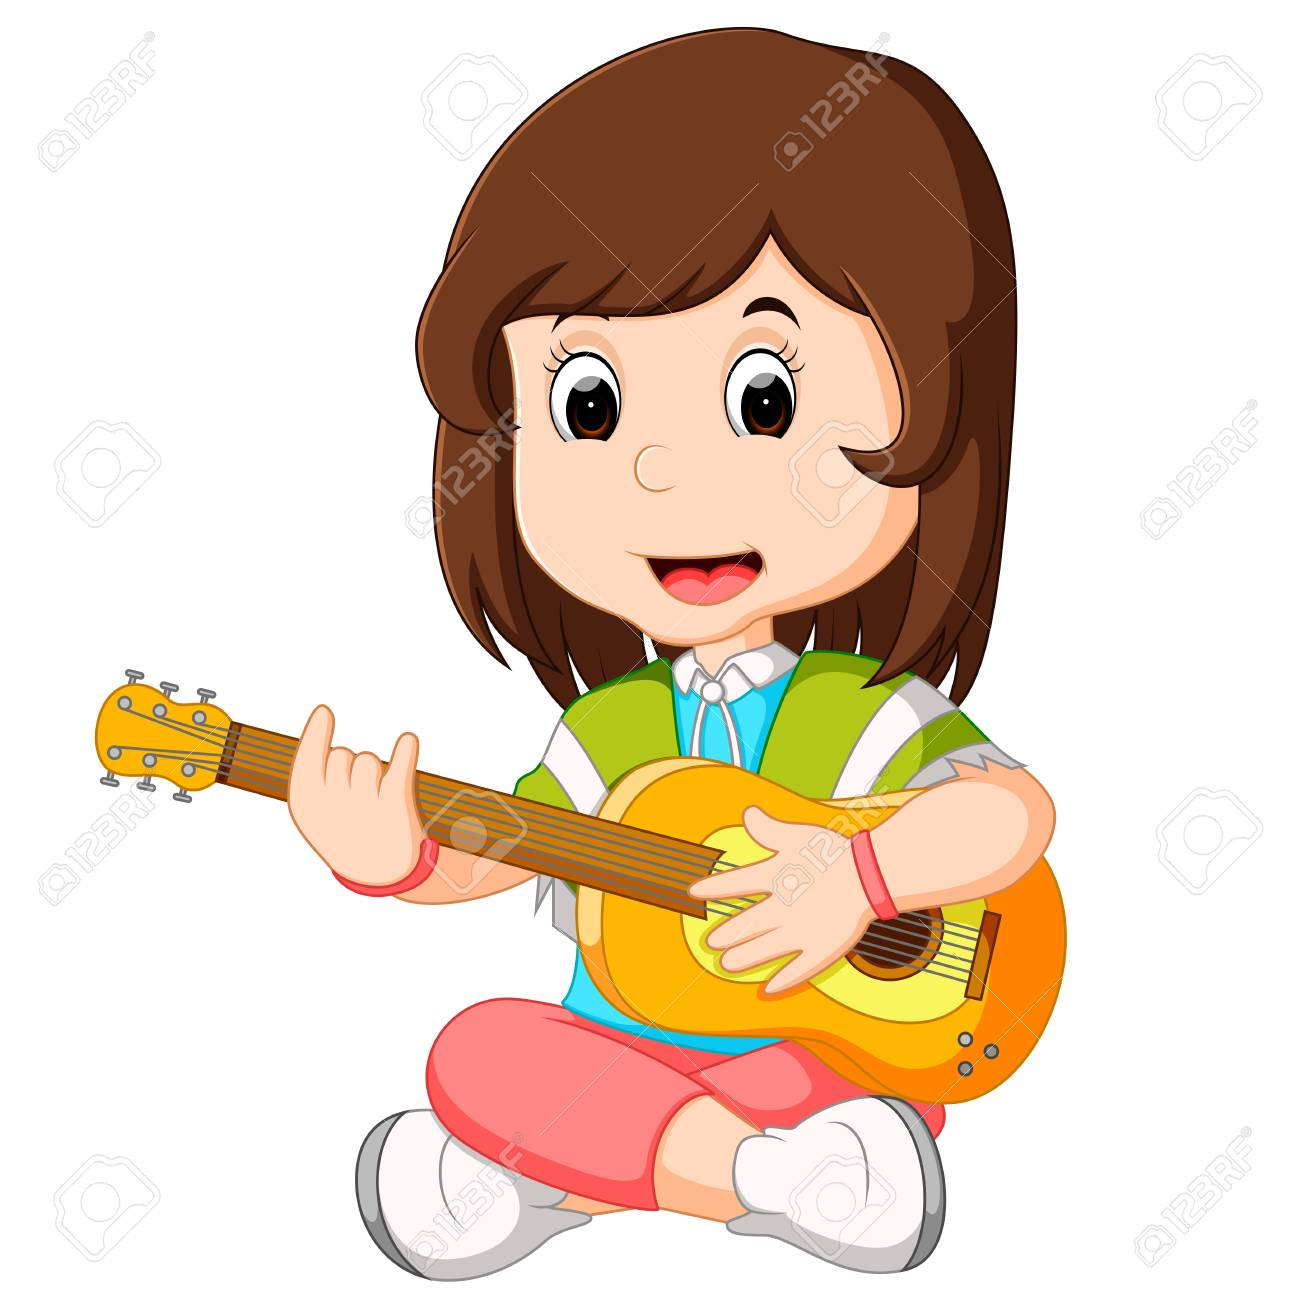 Guitar playing clipart svg black and white Girl playing guitar clipart 4 » Clipart Station svg black and white